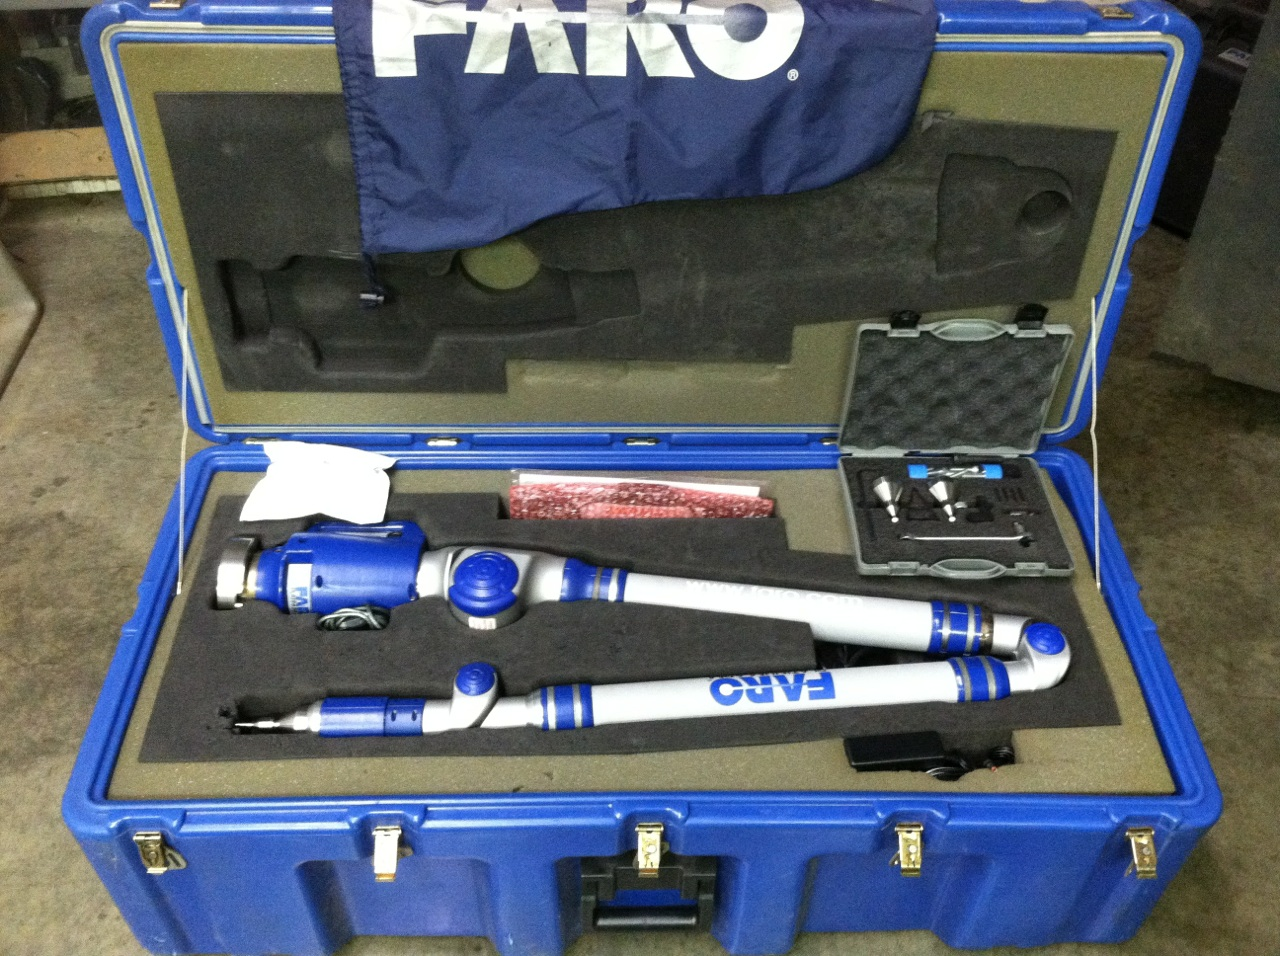 FARO ARM Priced to Sell at $17,500.00